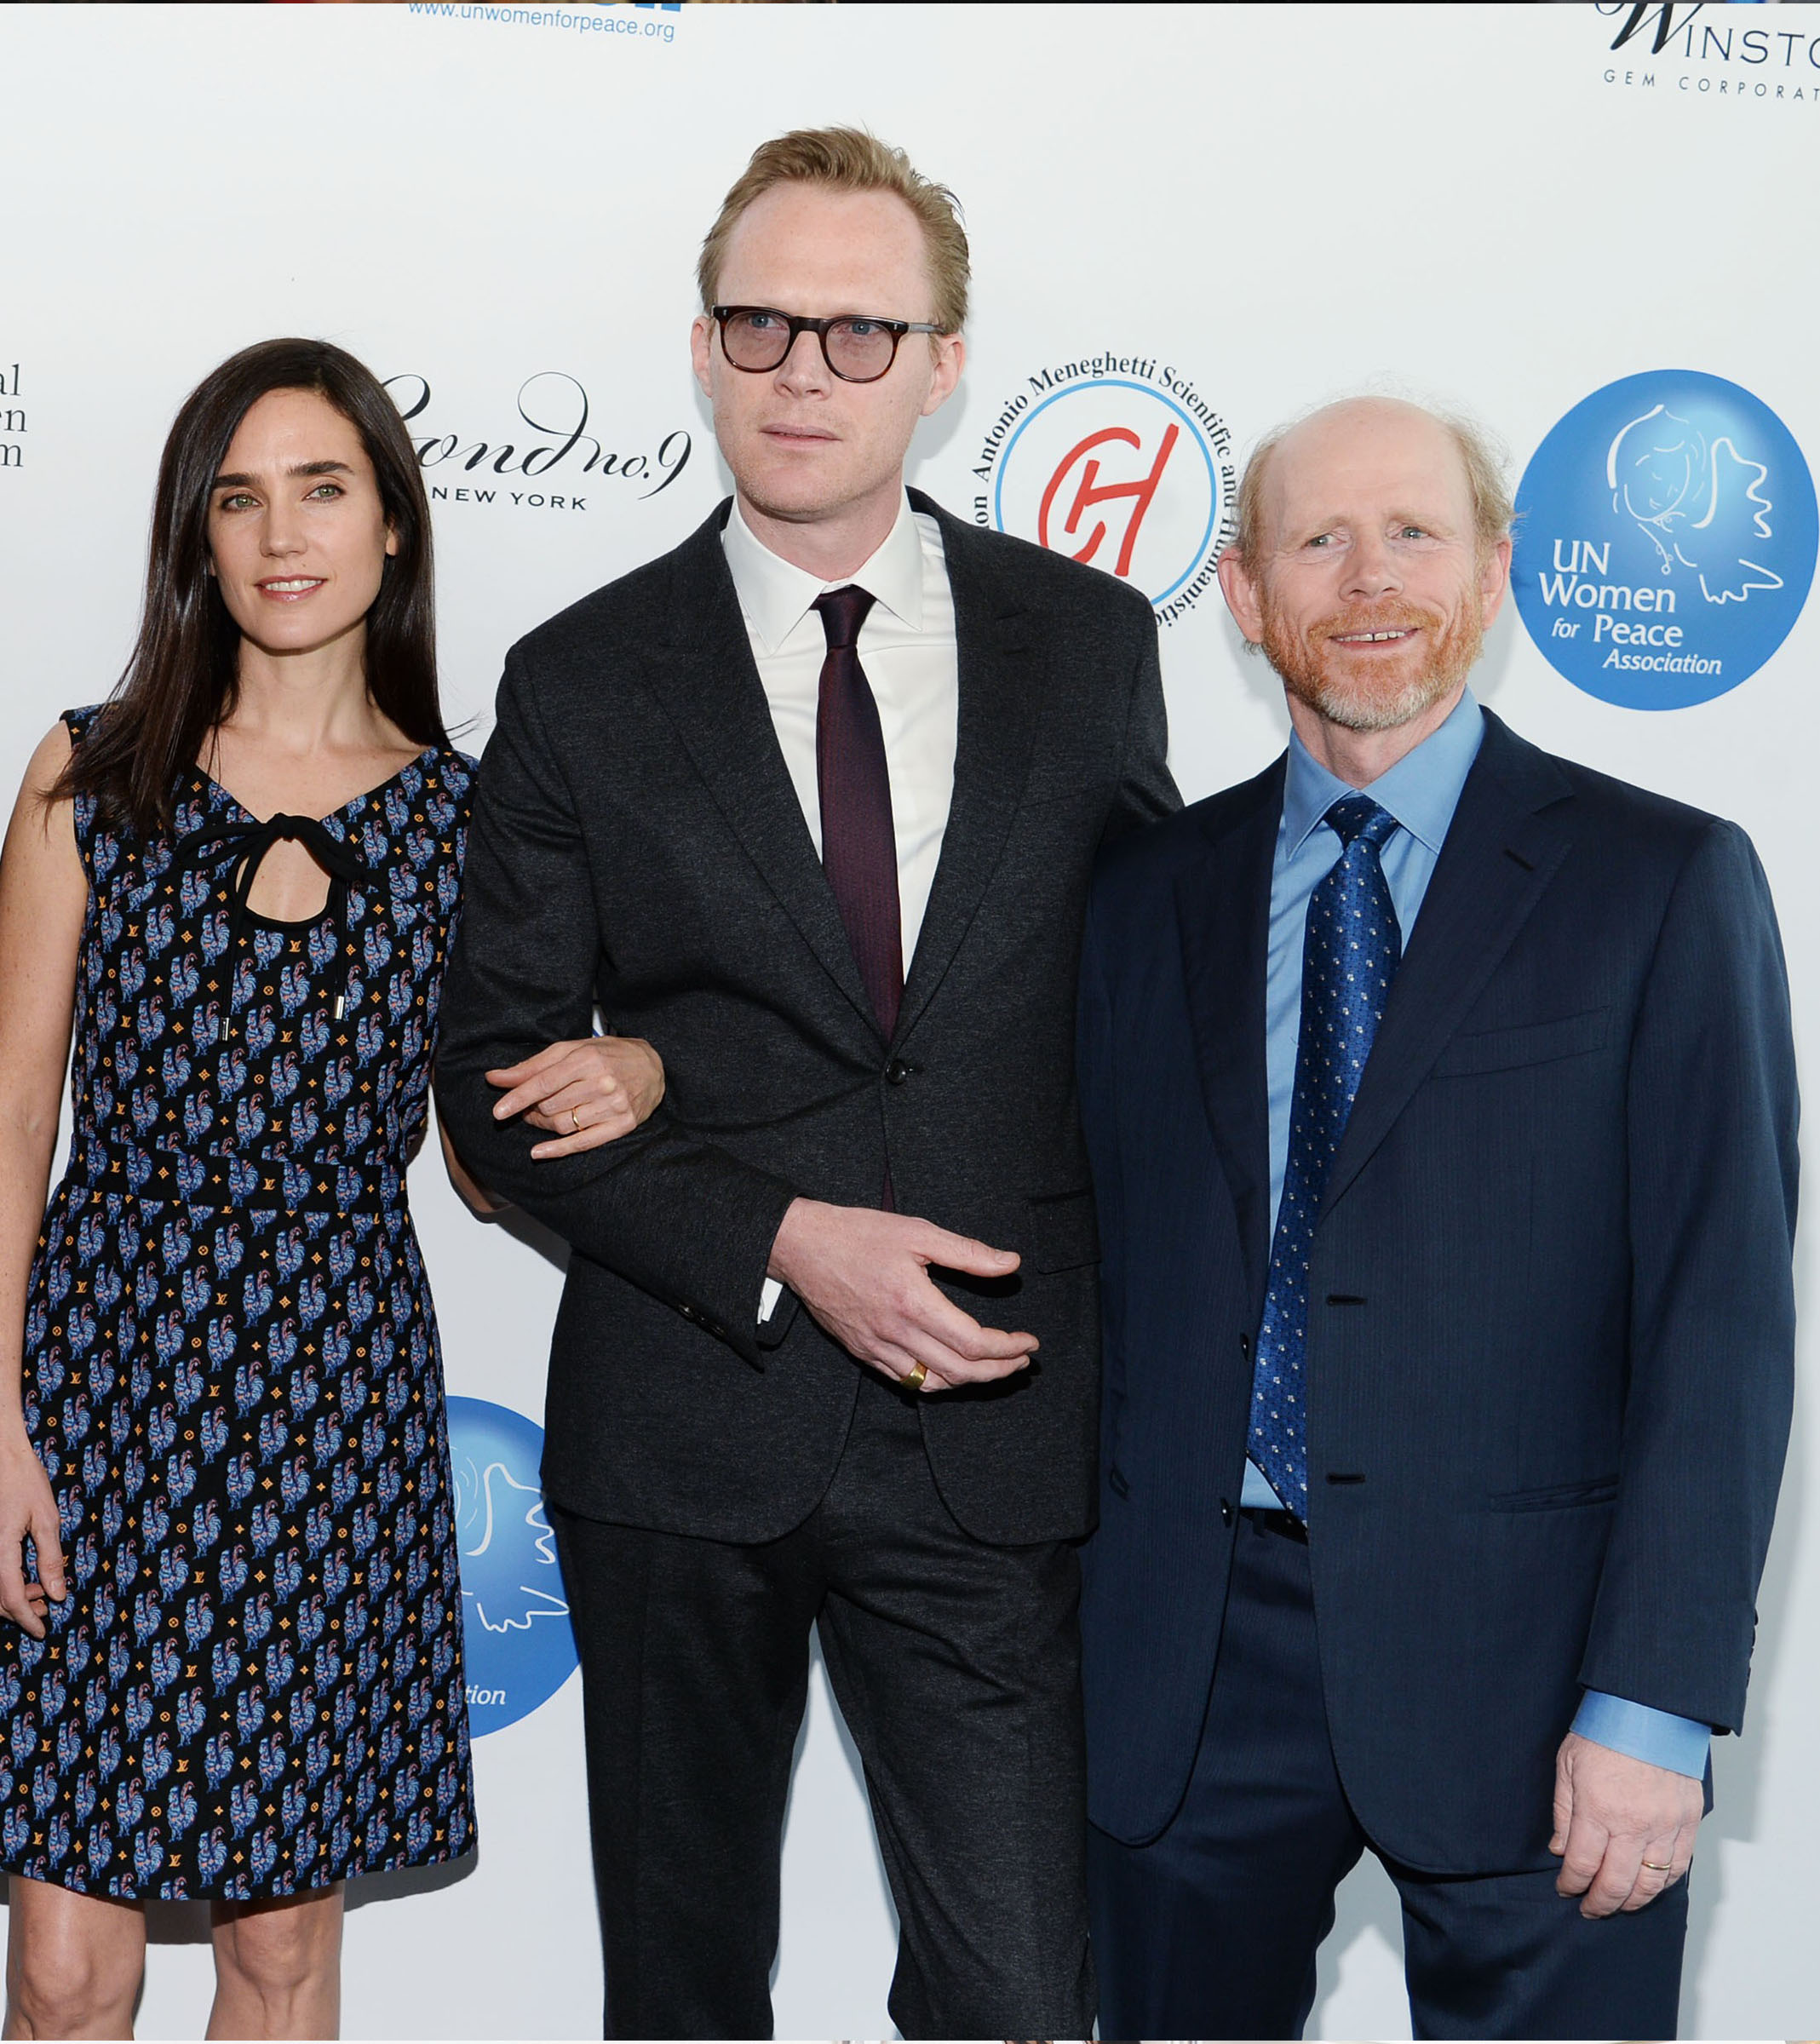 Jennifer Connelly, Paul Bettany & Ron Howard at the 2015 UNWFPA Annual Luncheon